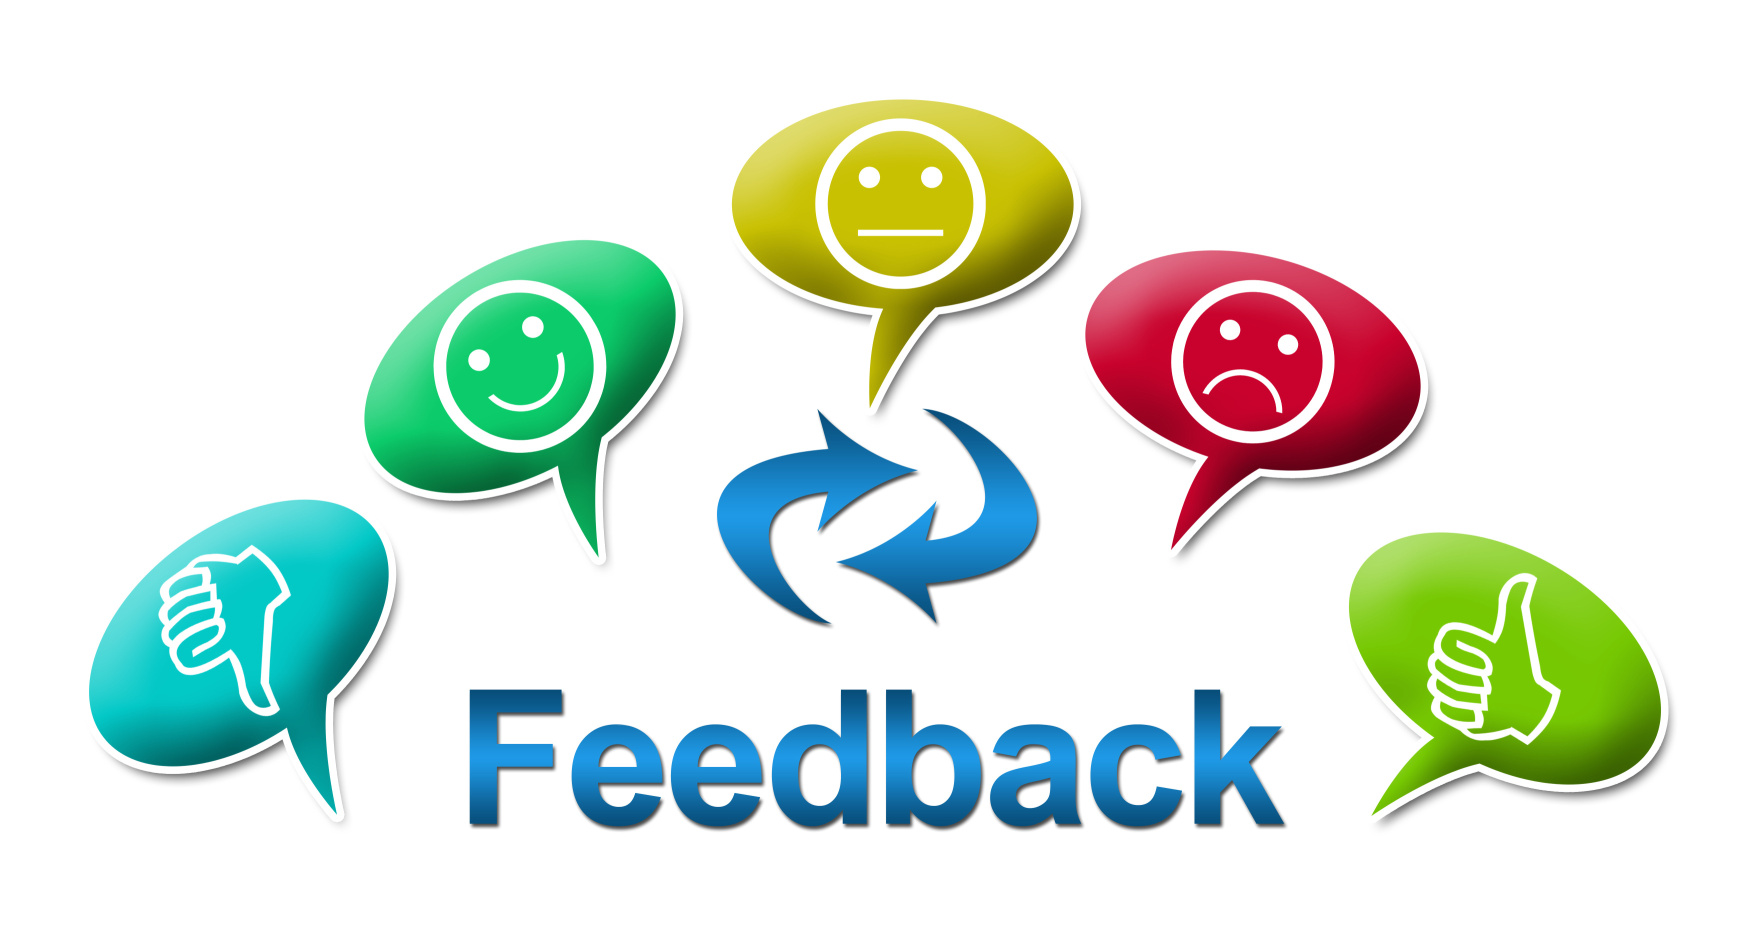 Classroom Based Web Design Course ~ Annual governance assessment your feedback requested by